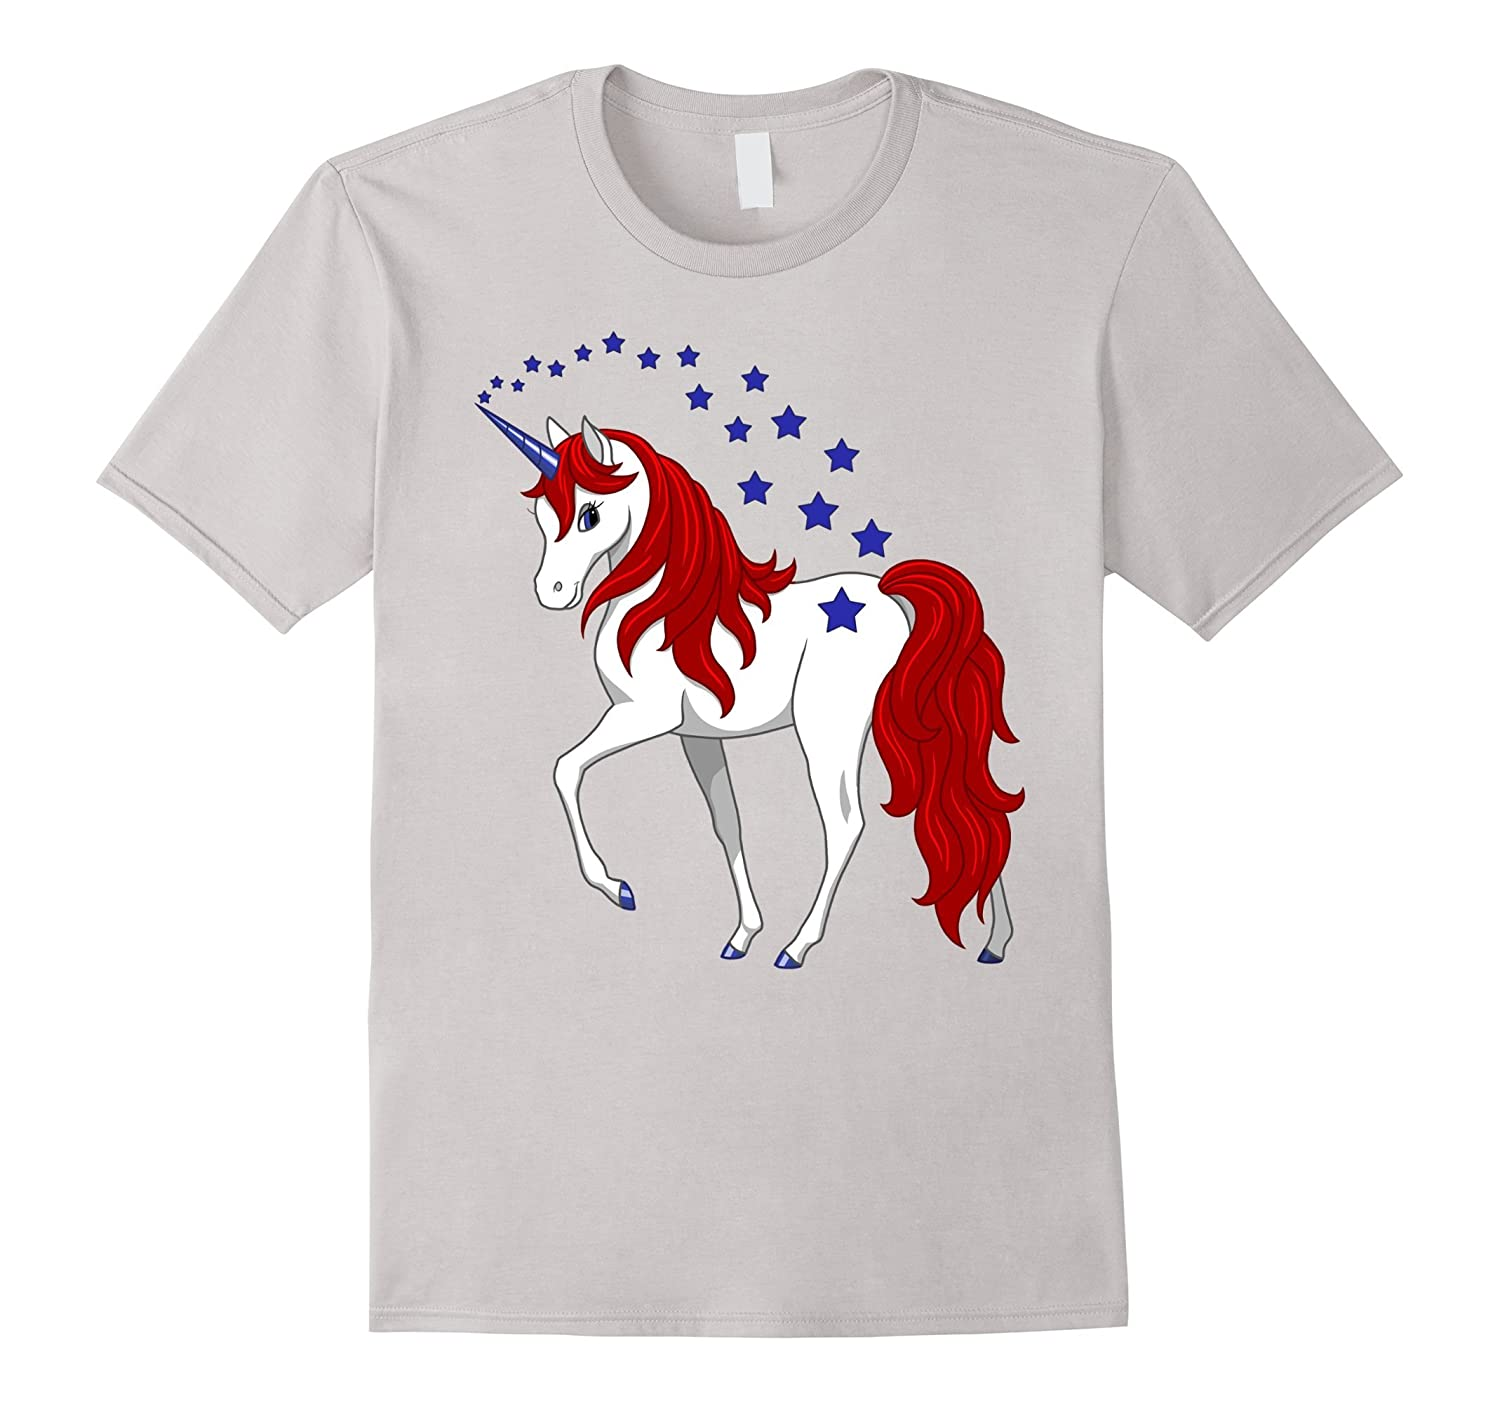 Patriotic American Red White Blue Unicorn T-shirt-ah my shirt one gift